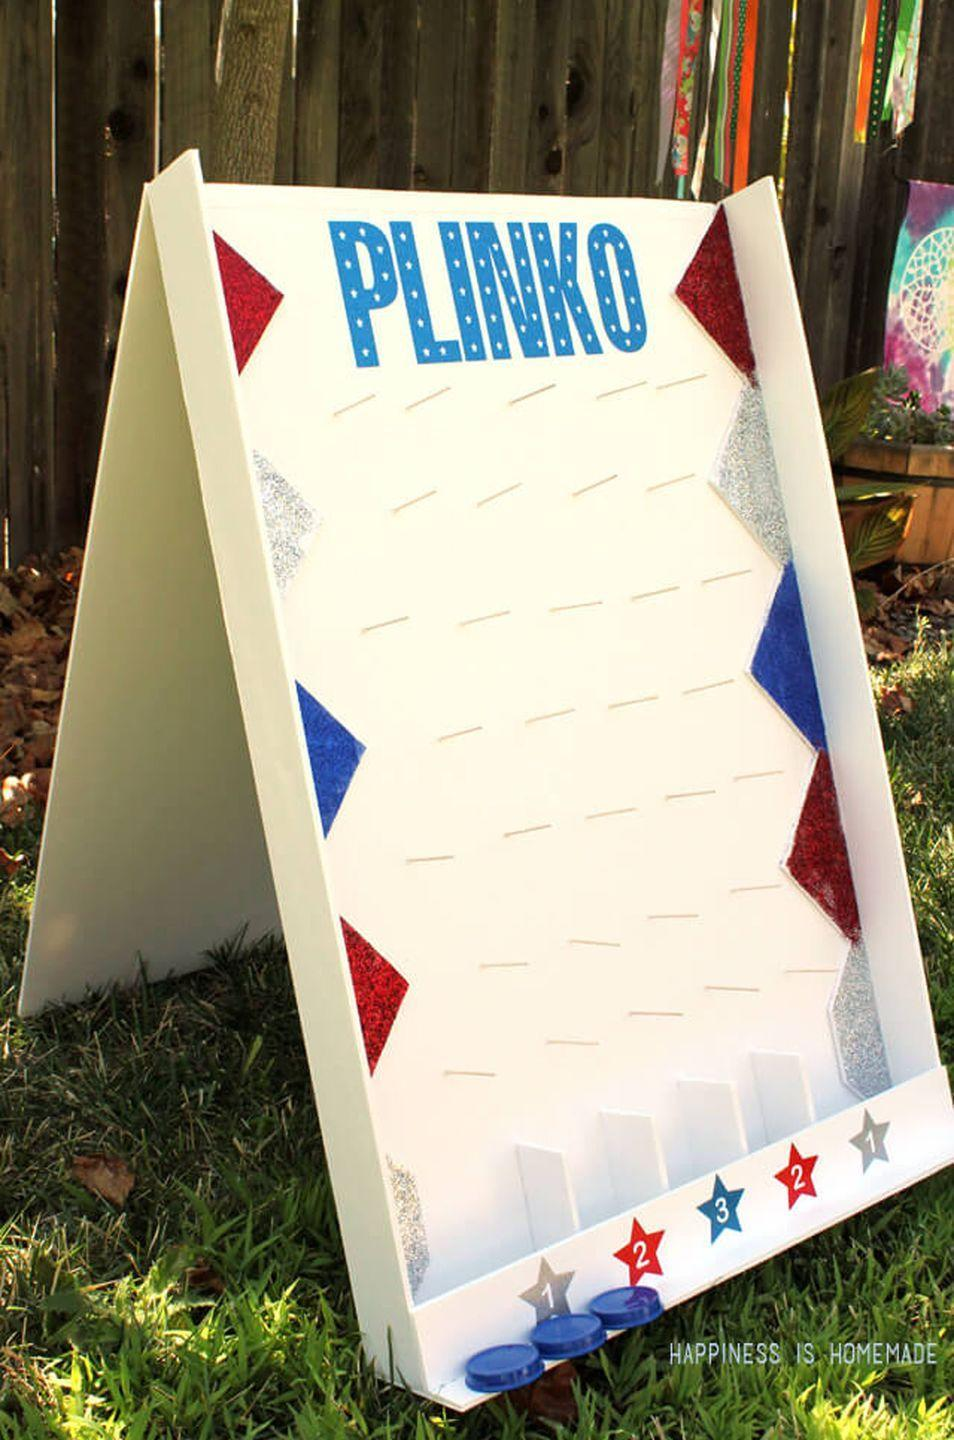 """<p>Bring the classic <em>Price is Right</em> game to your backyard with this DIY foam board. </p><p><strong>Get the tutorial at <a href=""""https://www.happinessishomemade.net/diy-backyard-plinko-party-game/"""" rel=""""nofollow noopener"""" target=""""_blank"""" data-ylk=""""slk:Happiness is Homemade"""" class=""""link rapid-noclick-resp"""">Happiness is Homemade</a>.</strong></p><p><a class=""""link rapid-noclick-resp"""" href=""""https://www.amazon.com/ELMERS-Board-Thick-Single-950398/dp/B000KNL4RK?tag=syn-yahoo-20&ascsubtag=%5Bartid%7C10050.g.21095894%5Bsrc%7Cyahoo-us"""" rel=""""nofollow noopener"""" target=""""_blank"""" data-ylk=""""slk:SHOP FOAM BOARDS""""><strong>SHOP FOAM BOARDS</strong> </a></p>"""